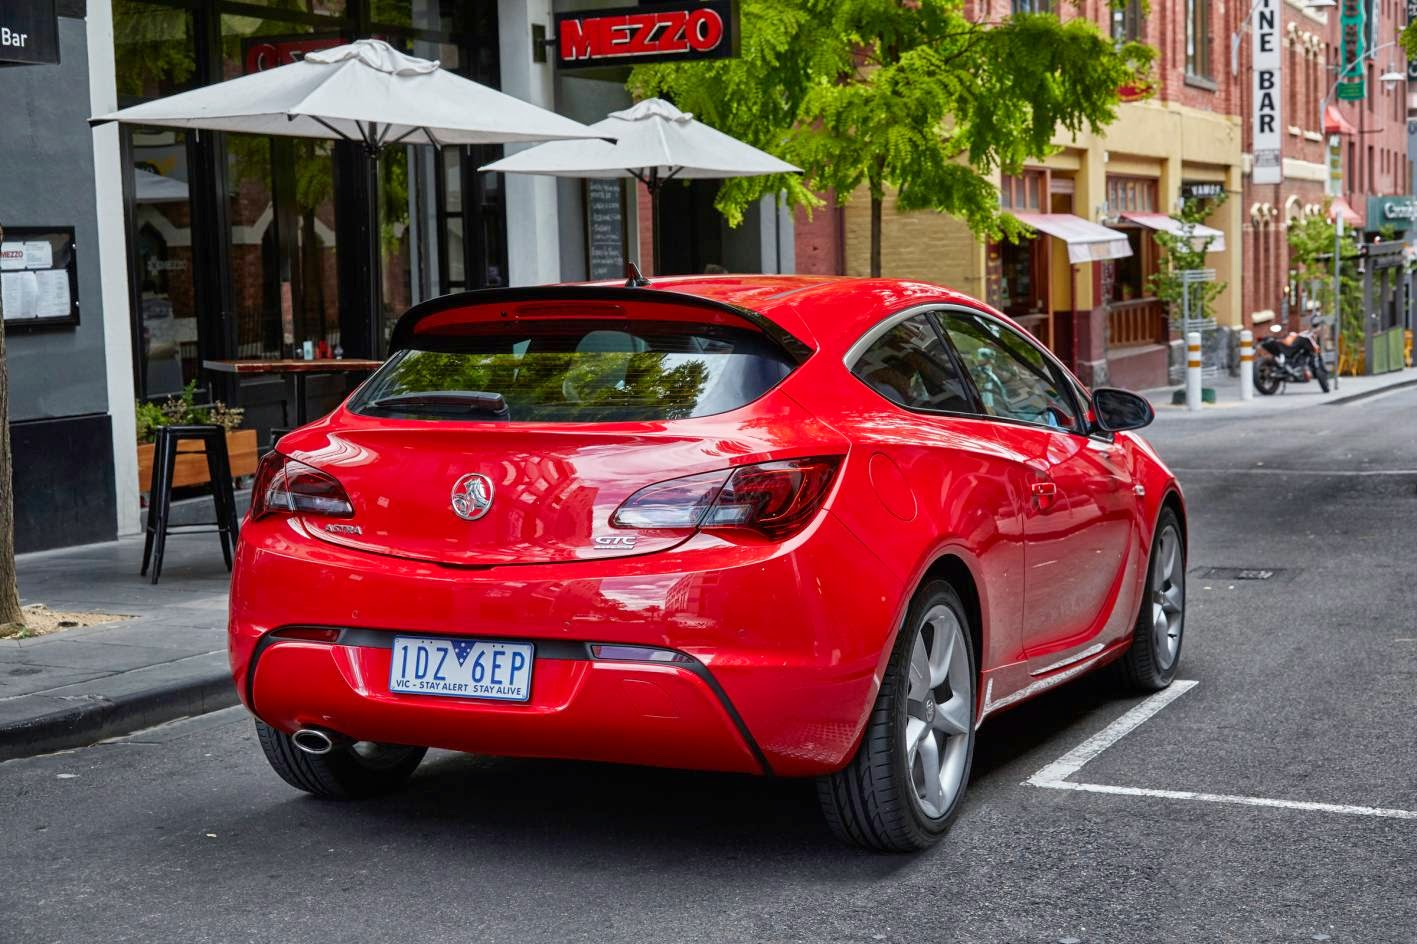 New Holden Astra GTC looks good from behind too